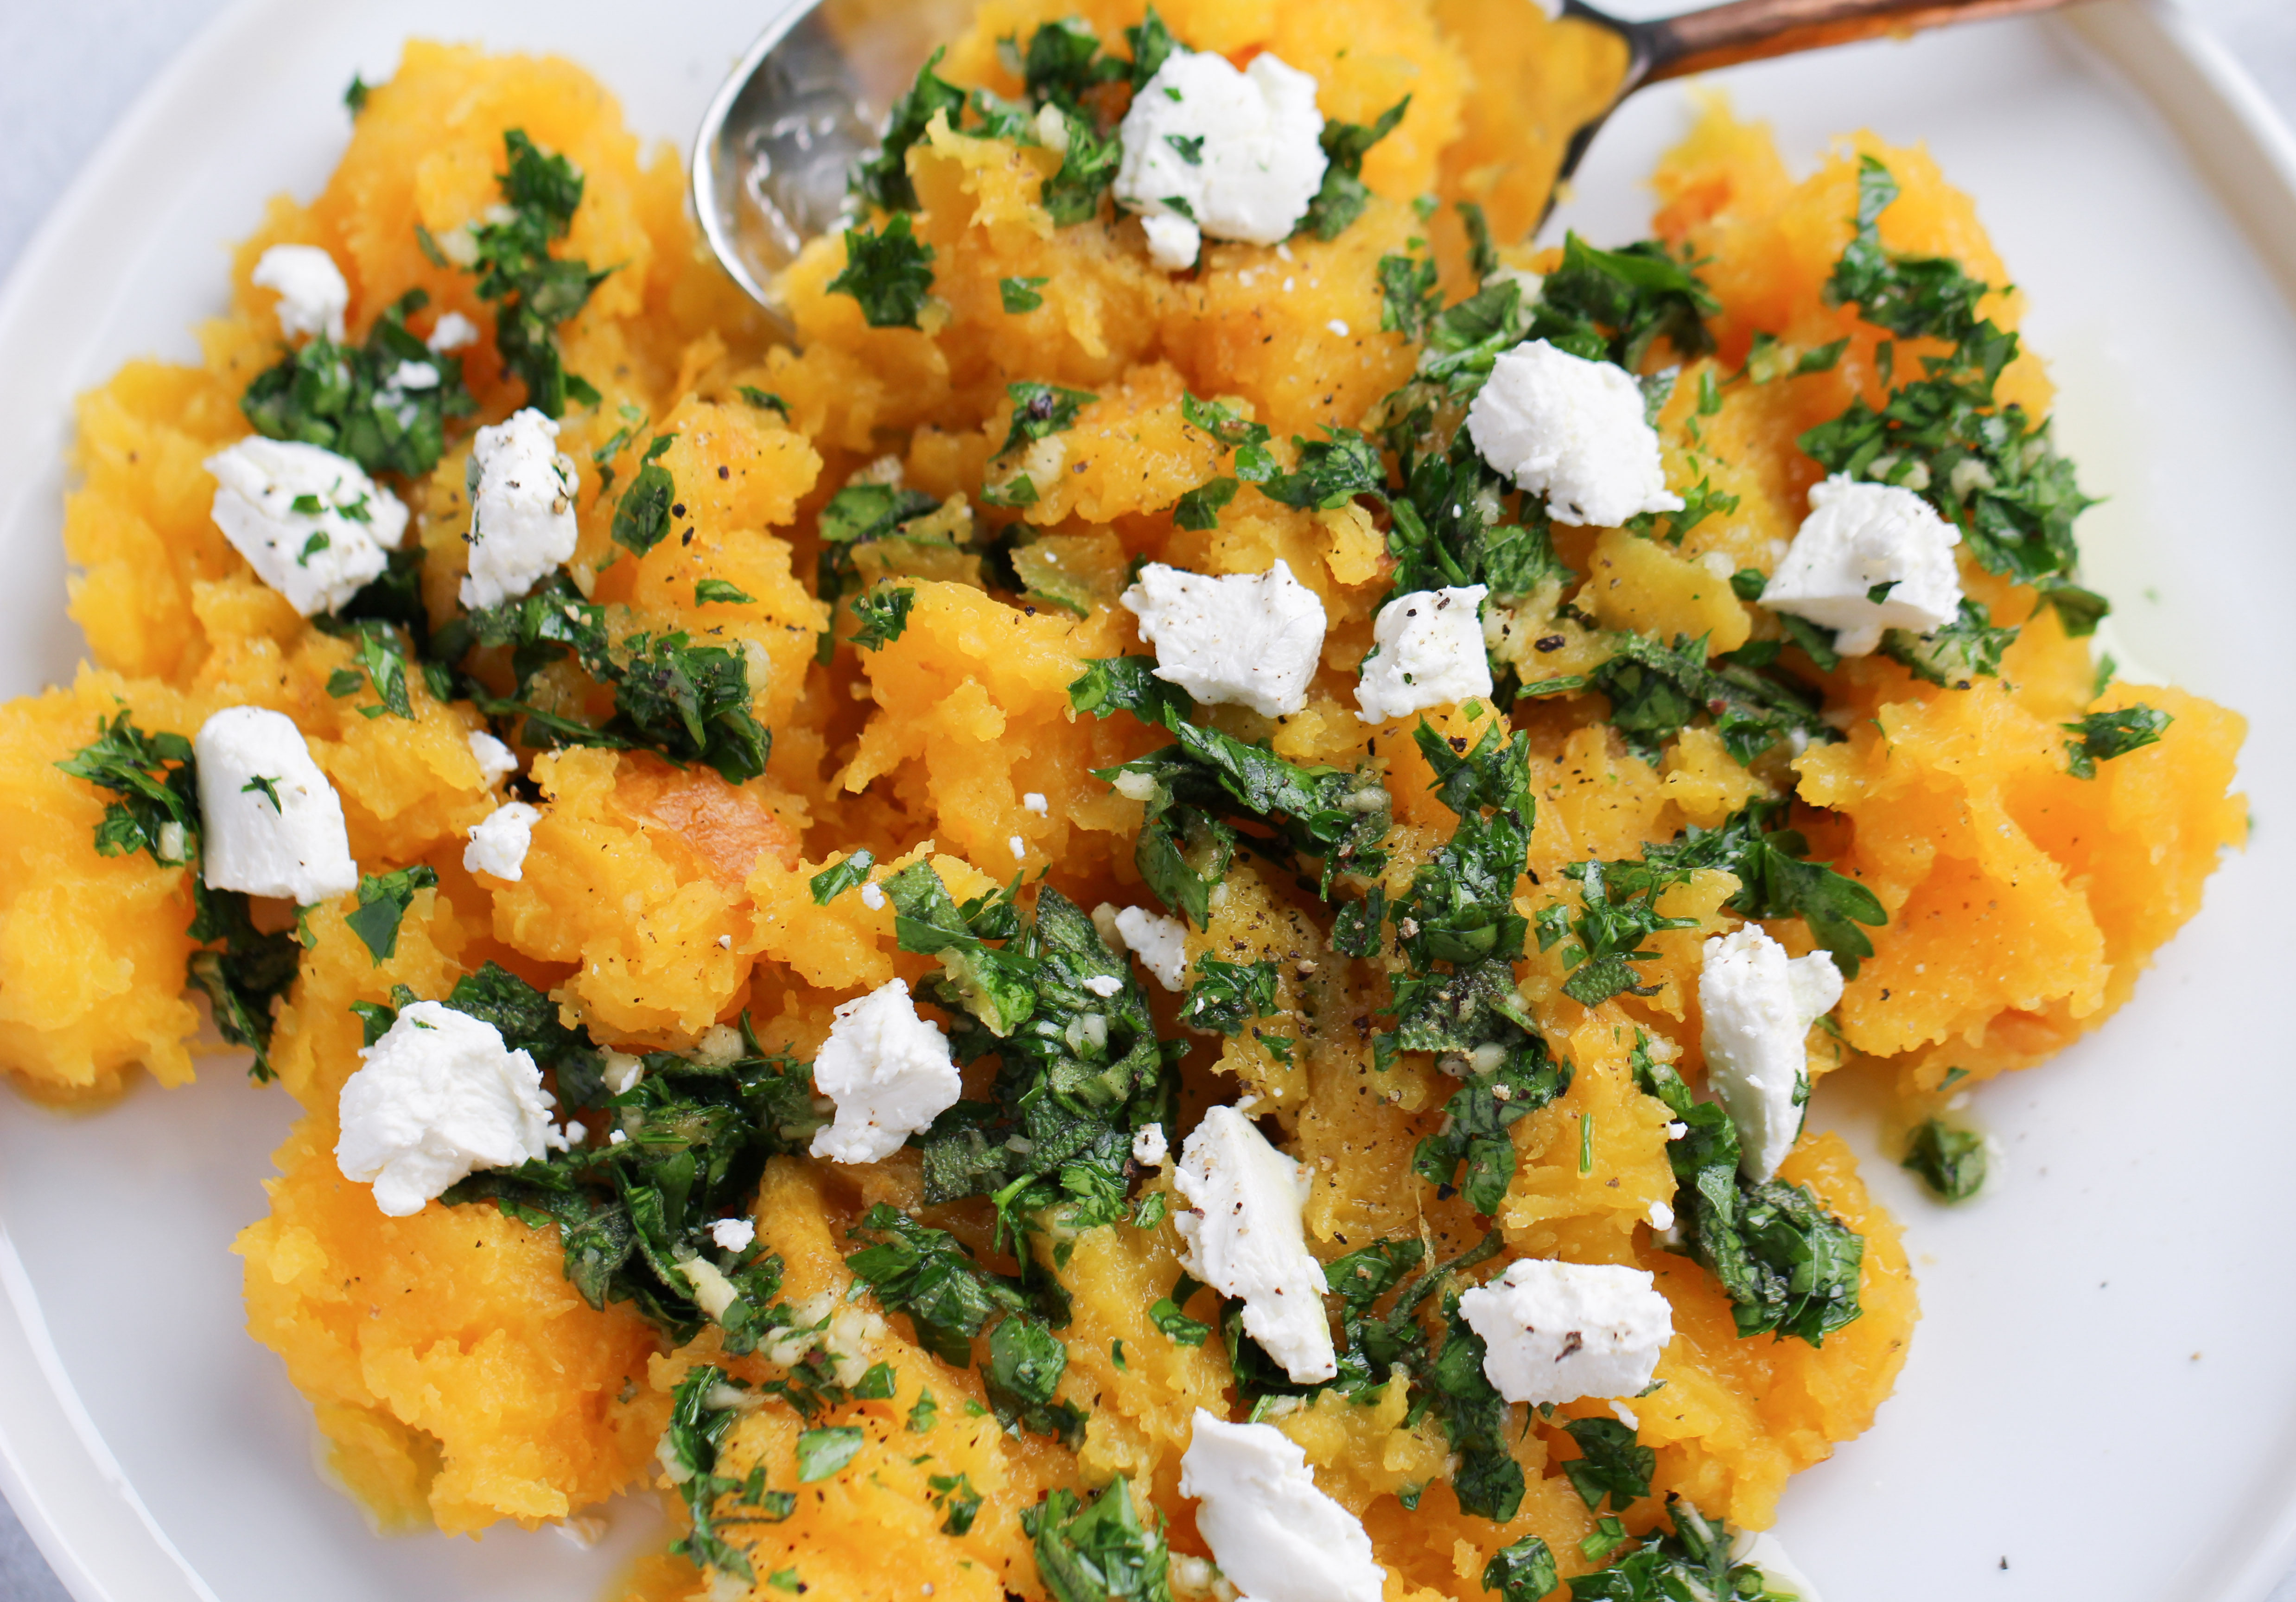 Butternut squash in herb oil and goat cheese on a white plate